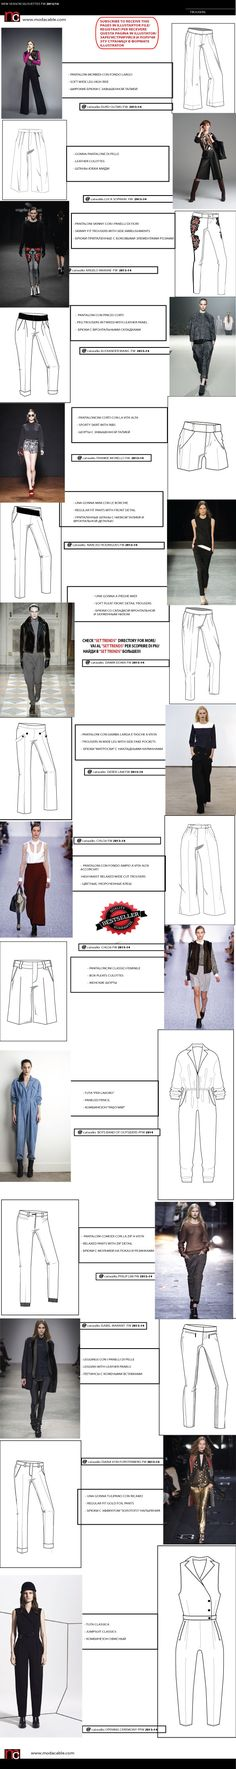 Runway pant shapes